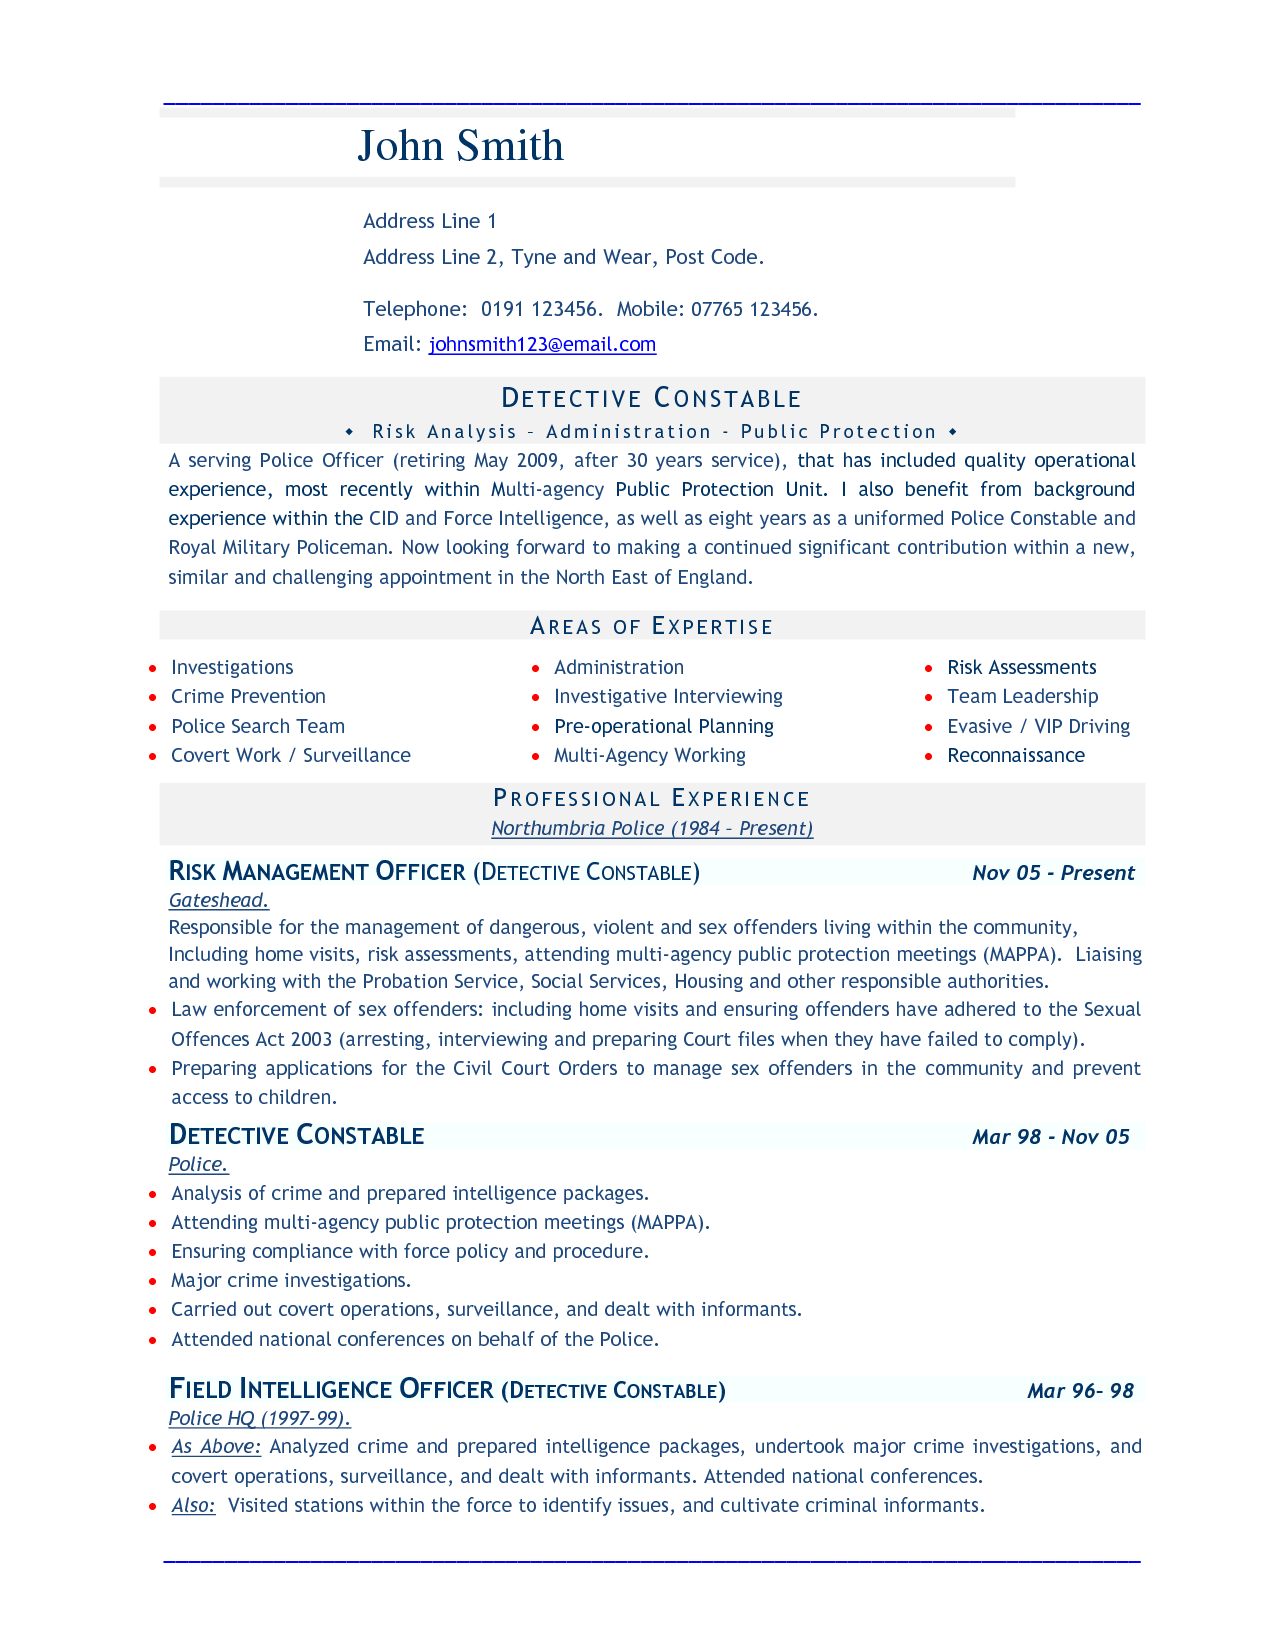 Cover Letter Template Doc Download - Resume Templates Microsoft Word Resume Templates Microsoft Word